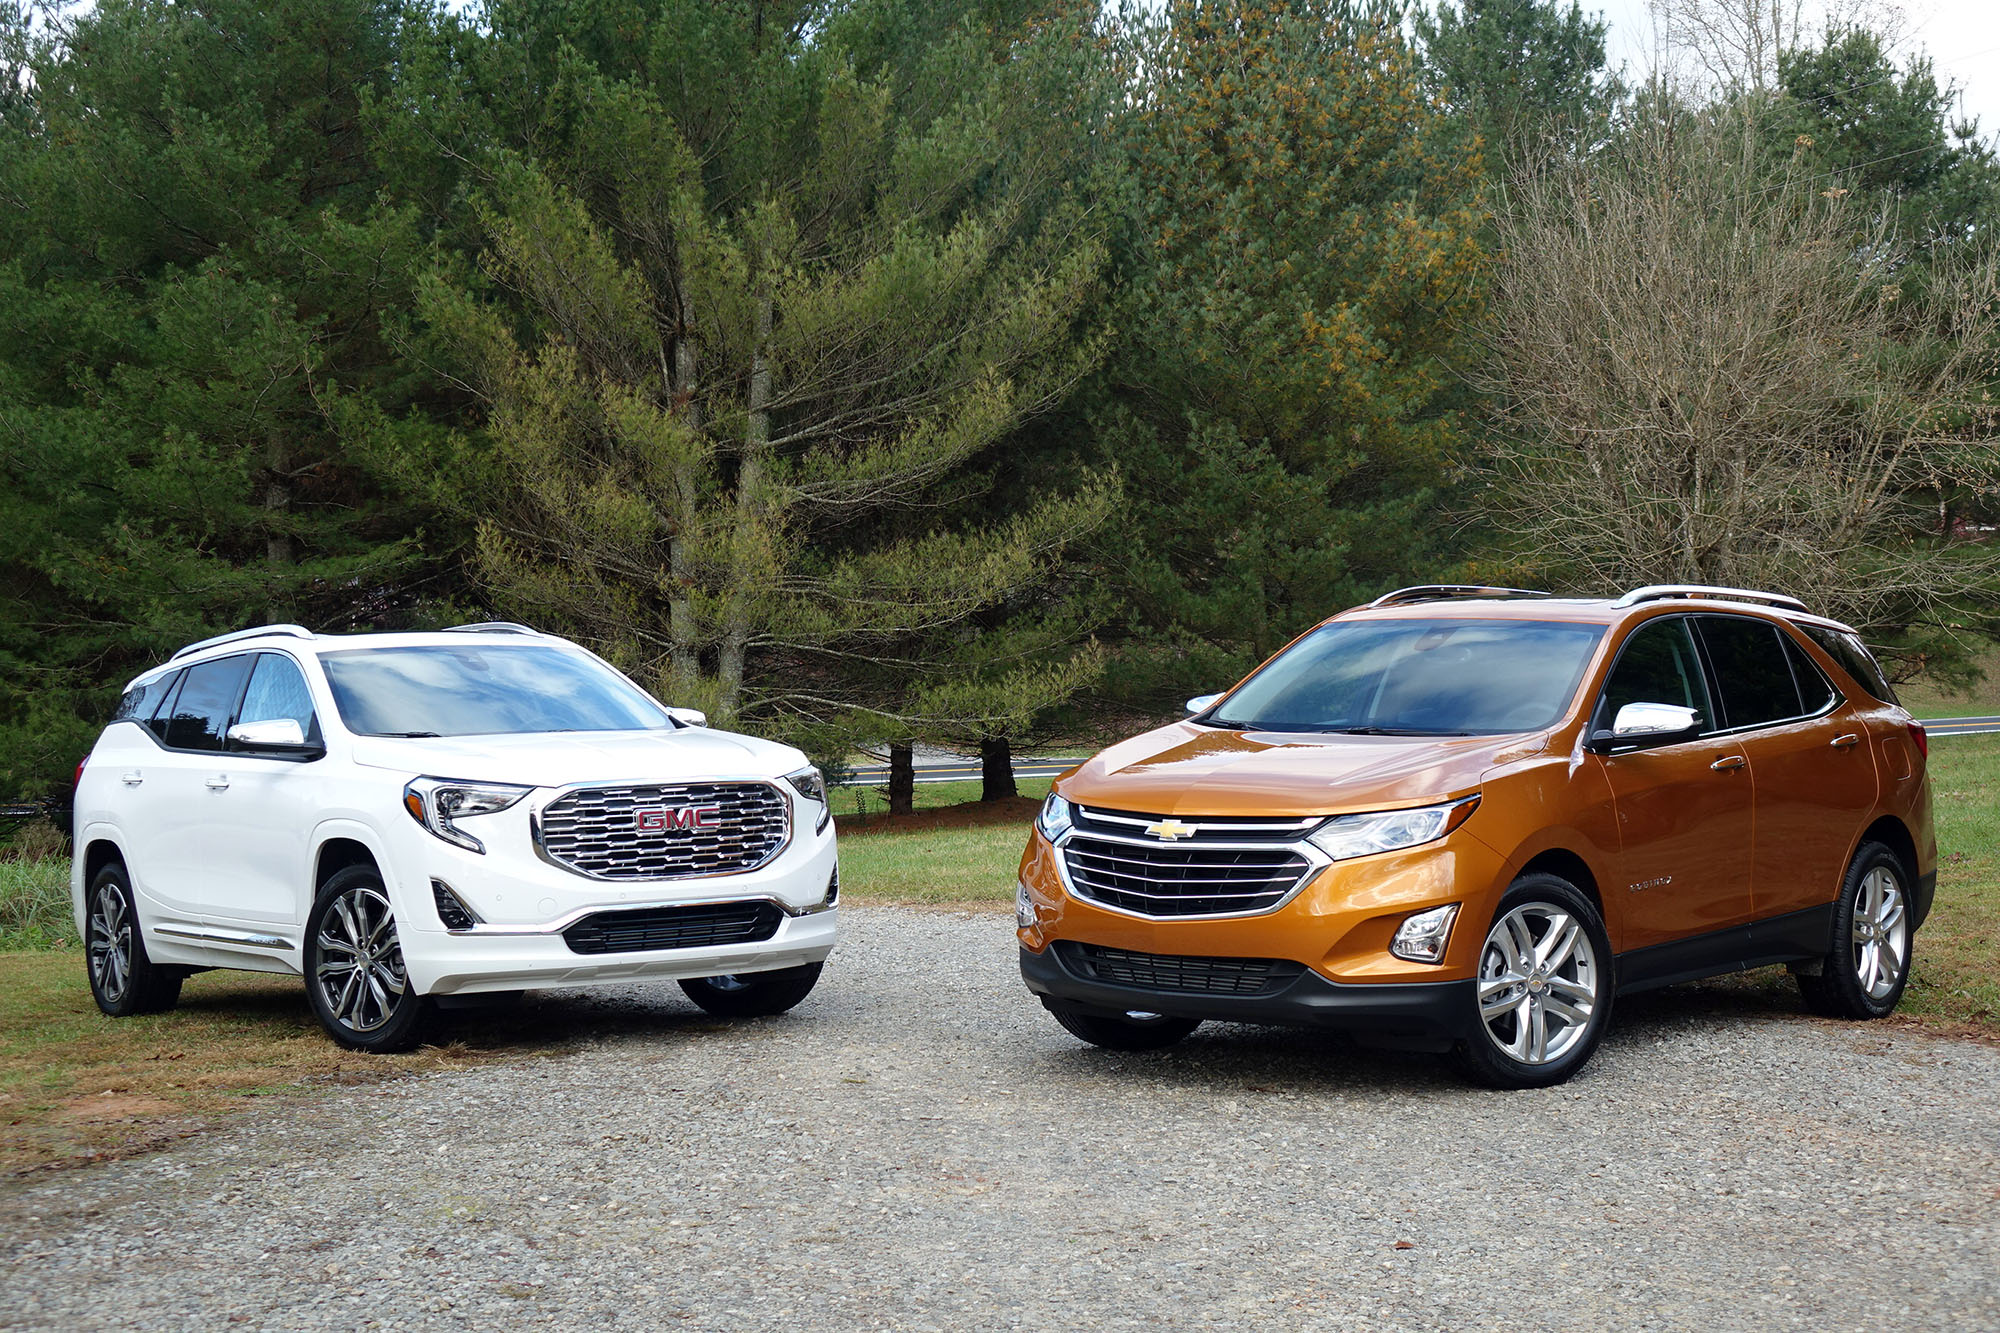 2018 Chevrolet Equinox vs. 2018 GMC Terrain: Compare Cars